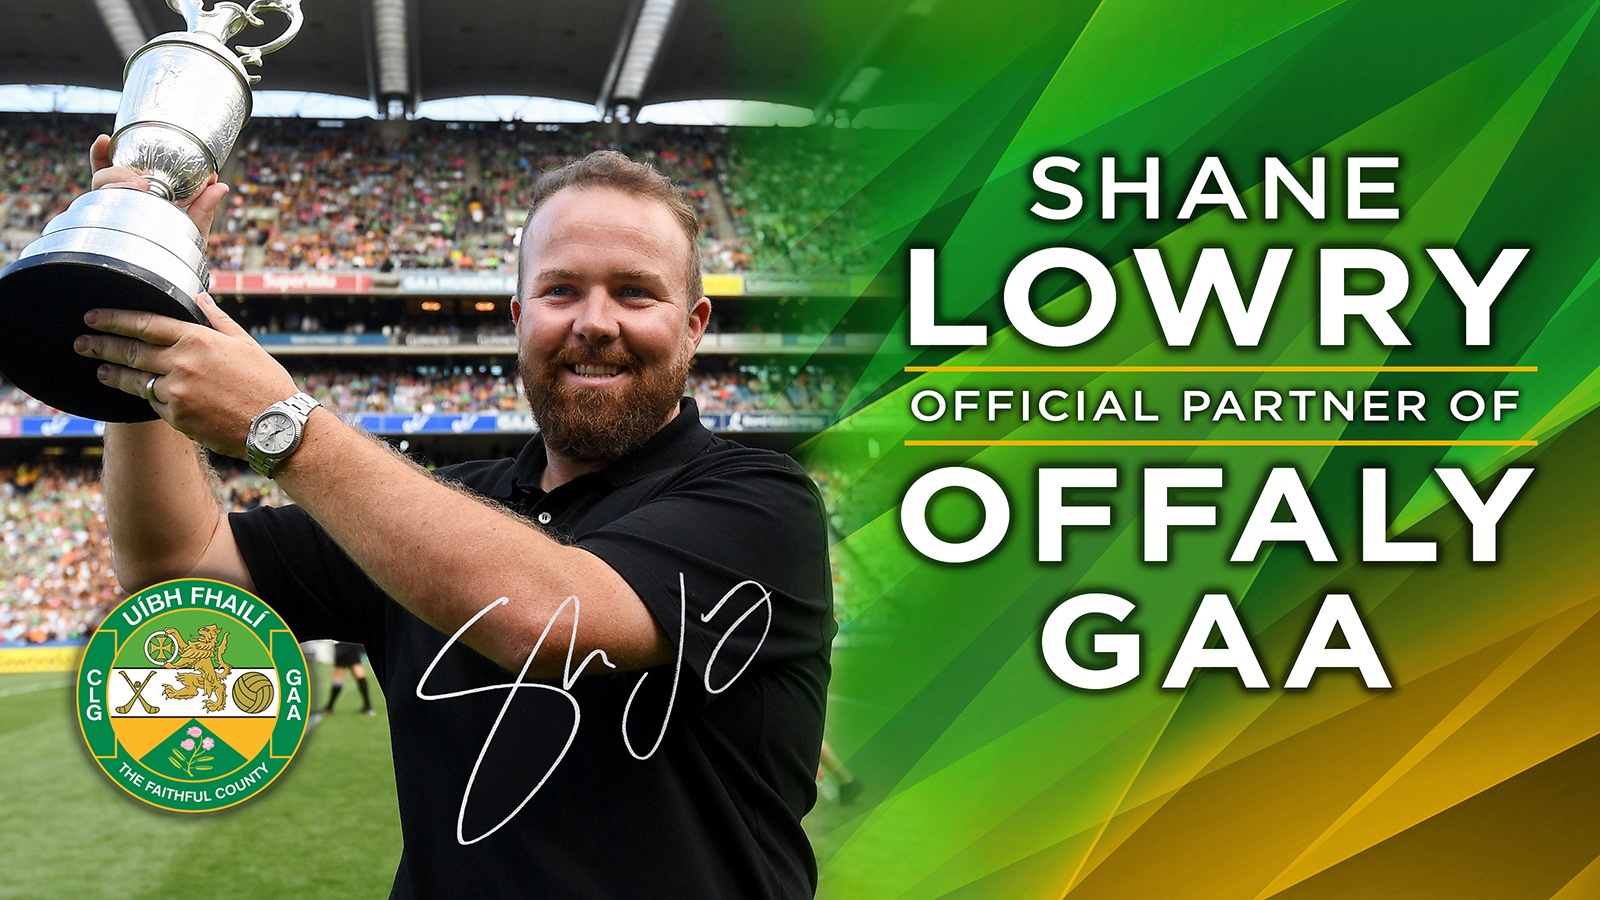 Shane Lowry Becomes An Official Partner With Offaly GAA